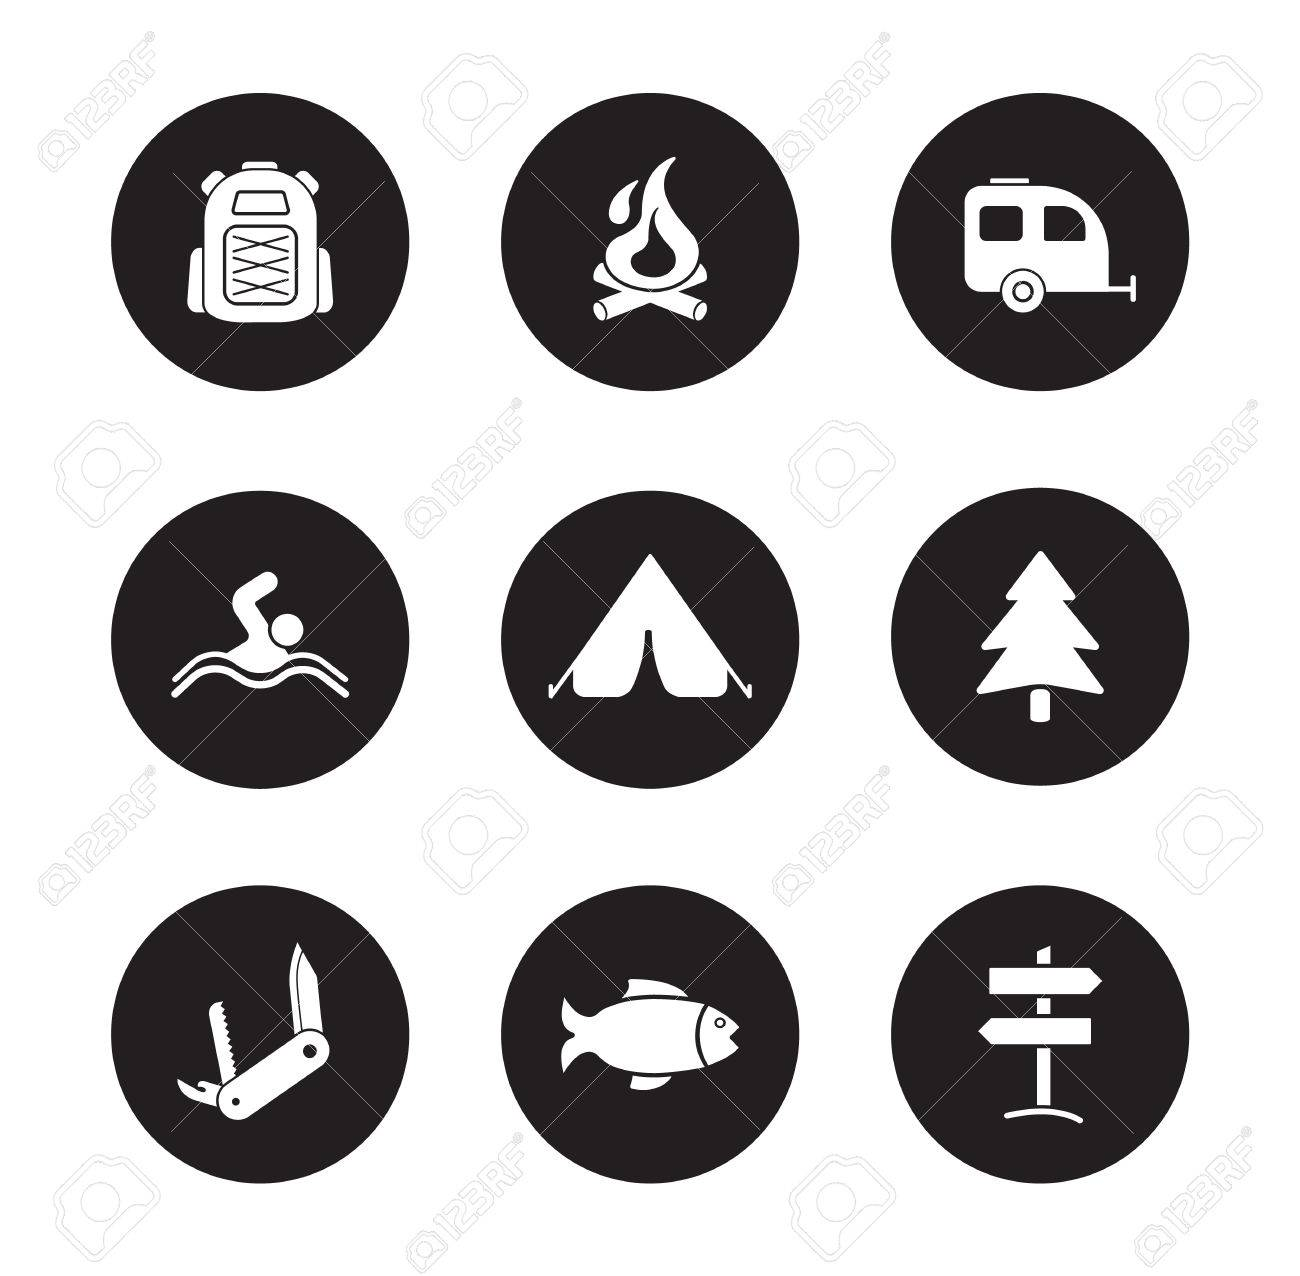 Camping And Tourism Black Icons Set Outdoor Recreation White Silhouettes Symbols Swimming Fishing